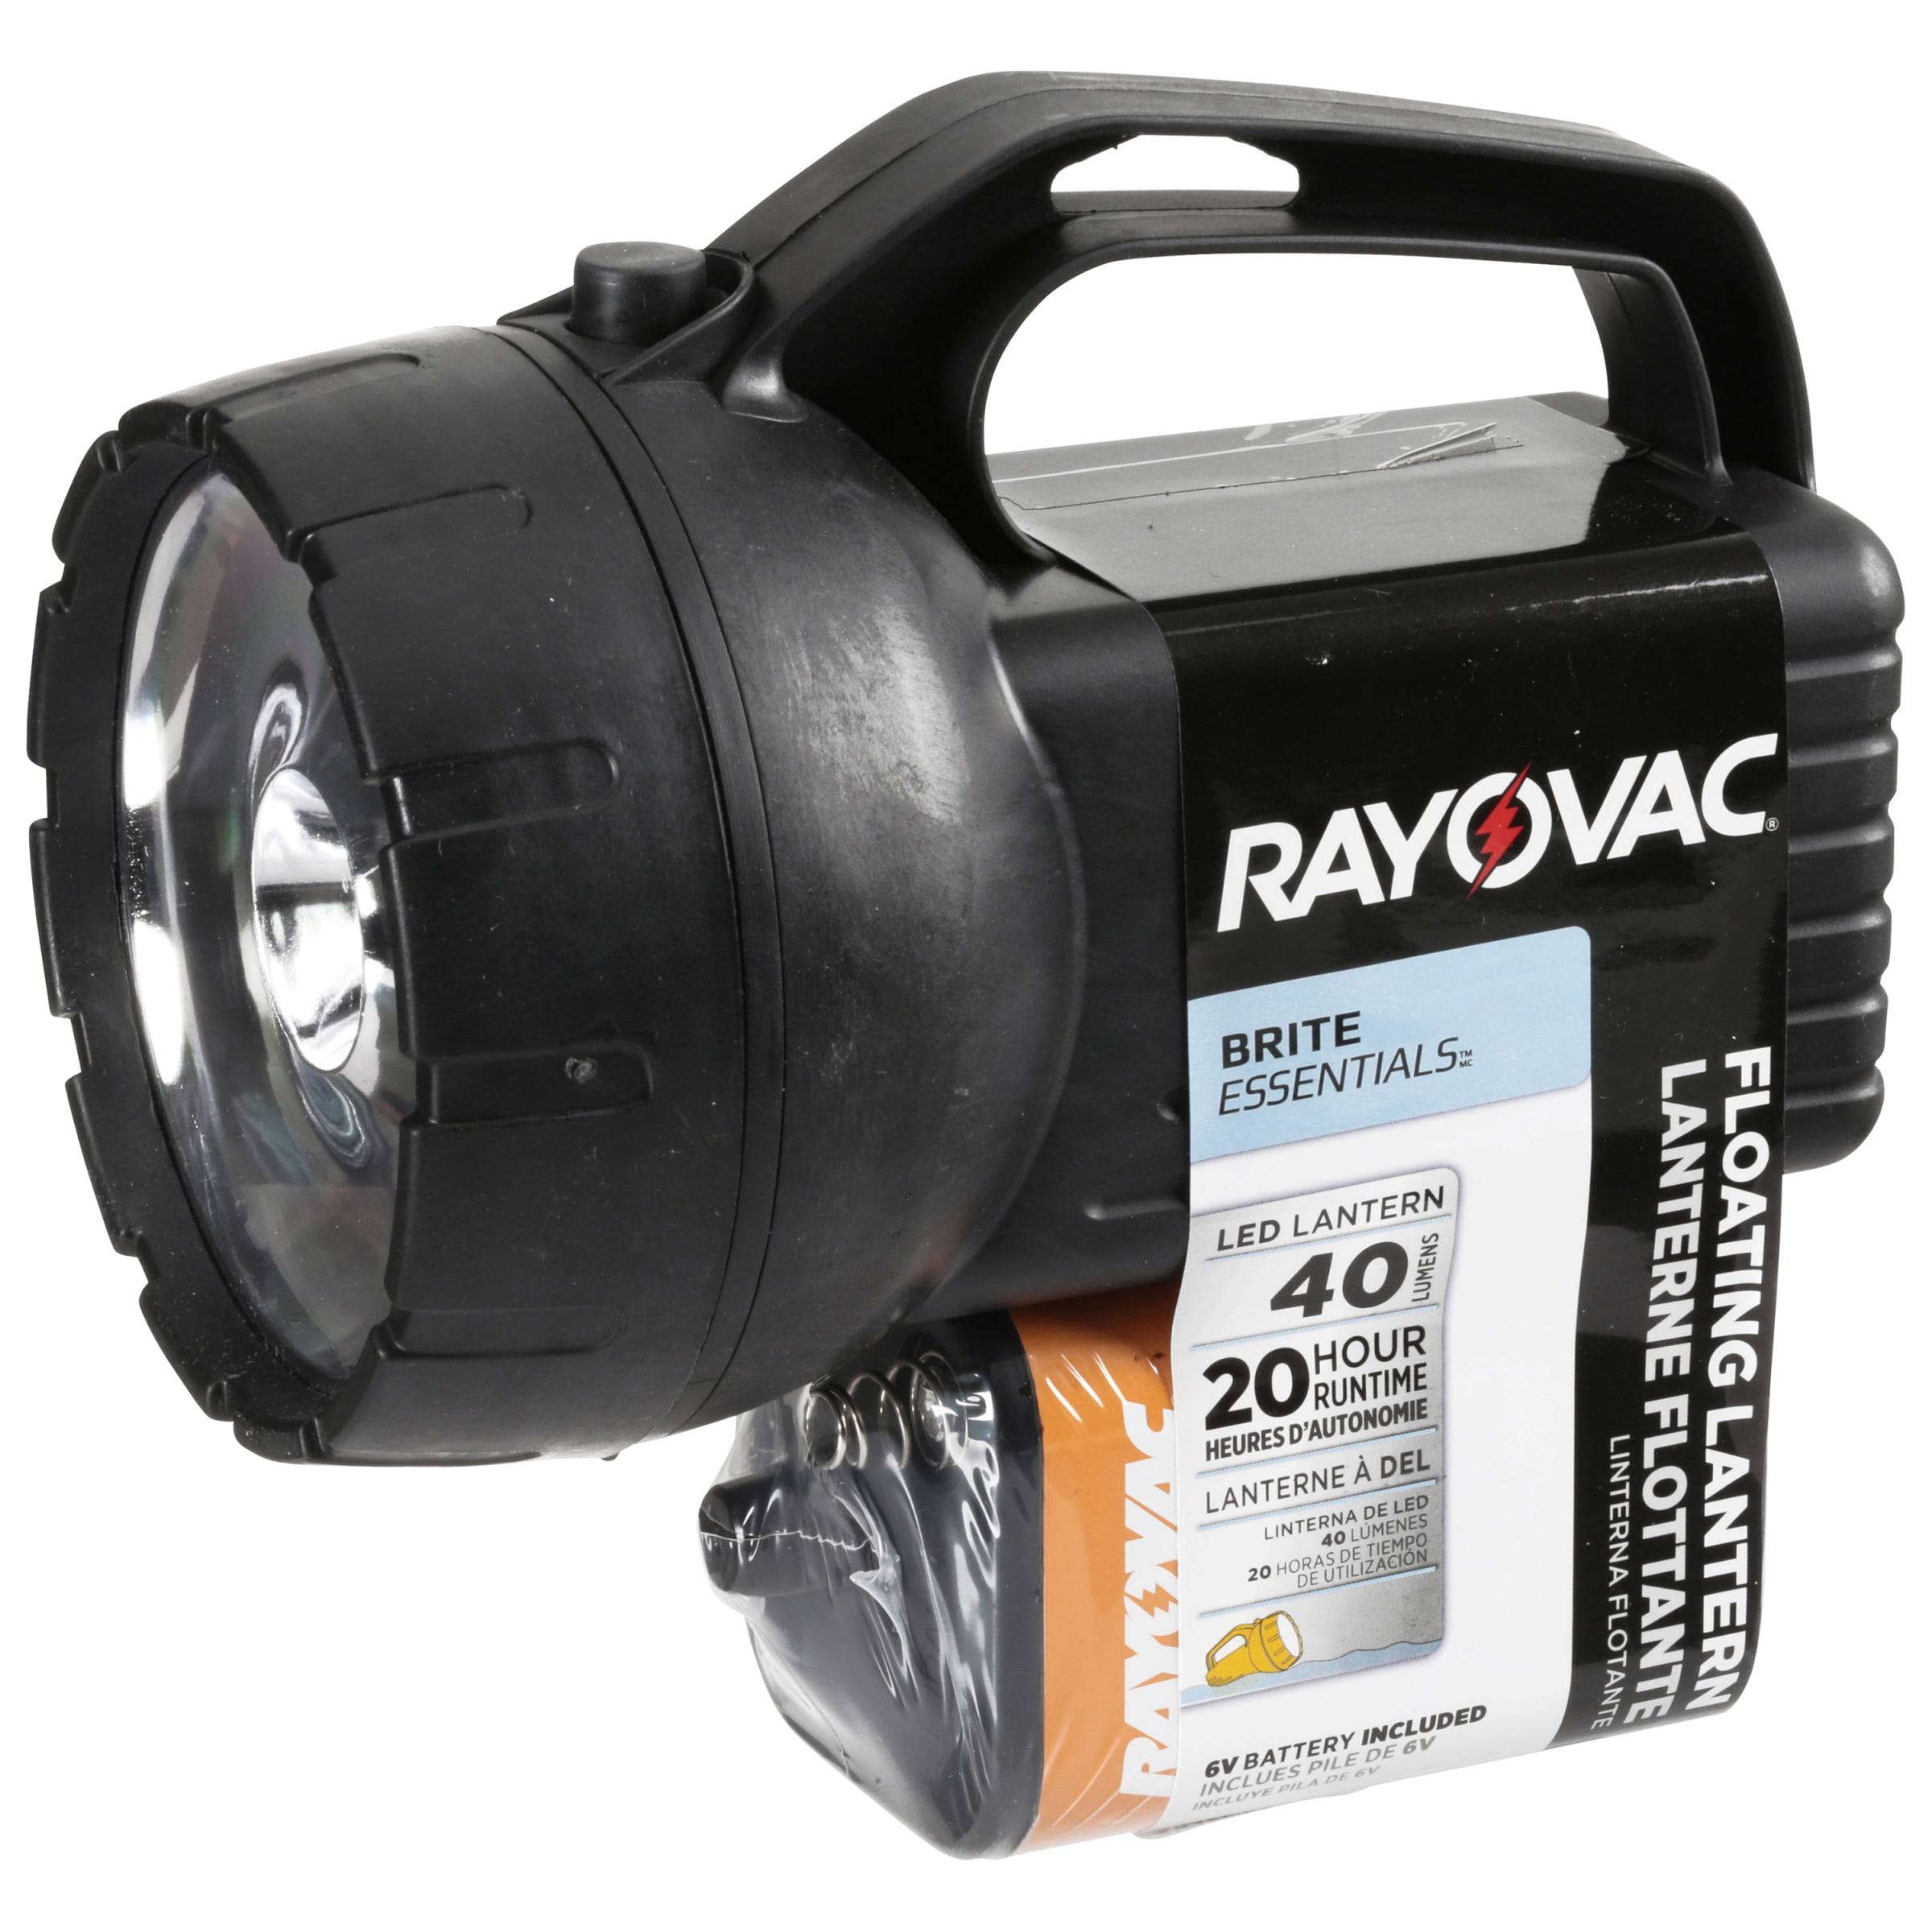 Rayovac 6V Economy Floating Lantern Colors May Vary by Rayovac